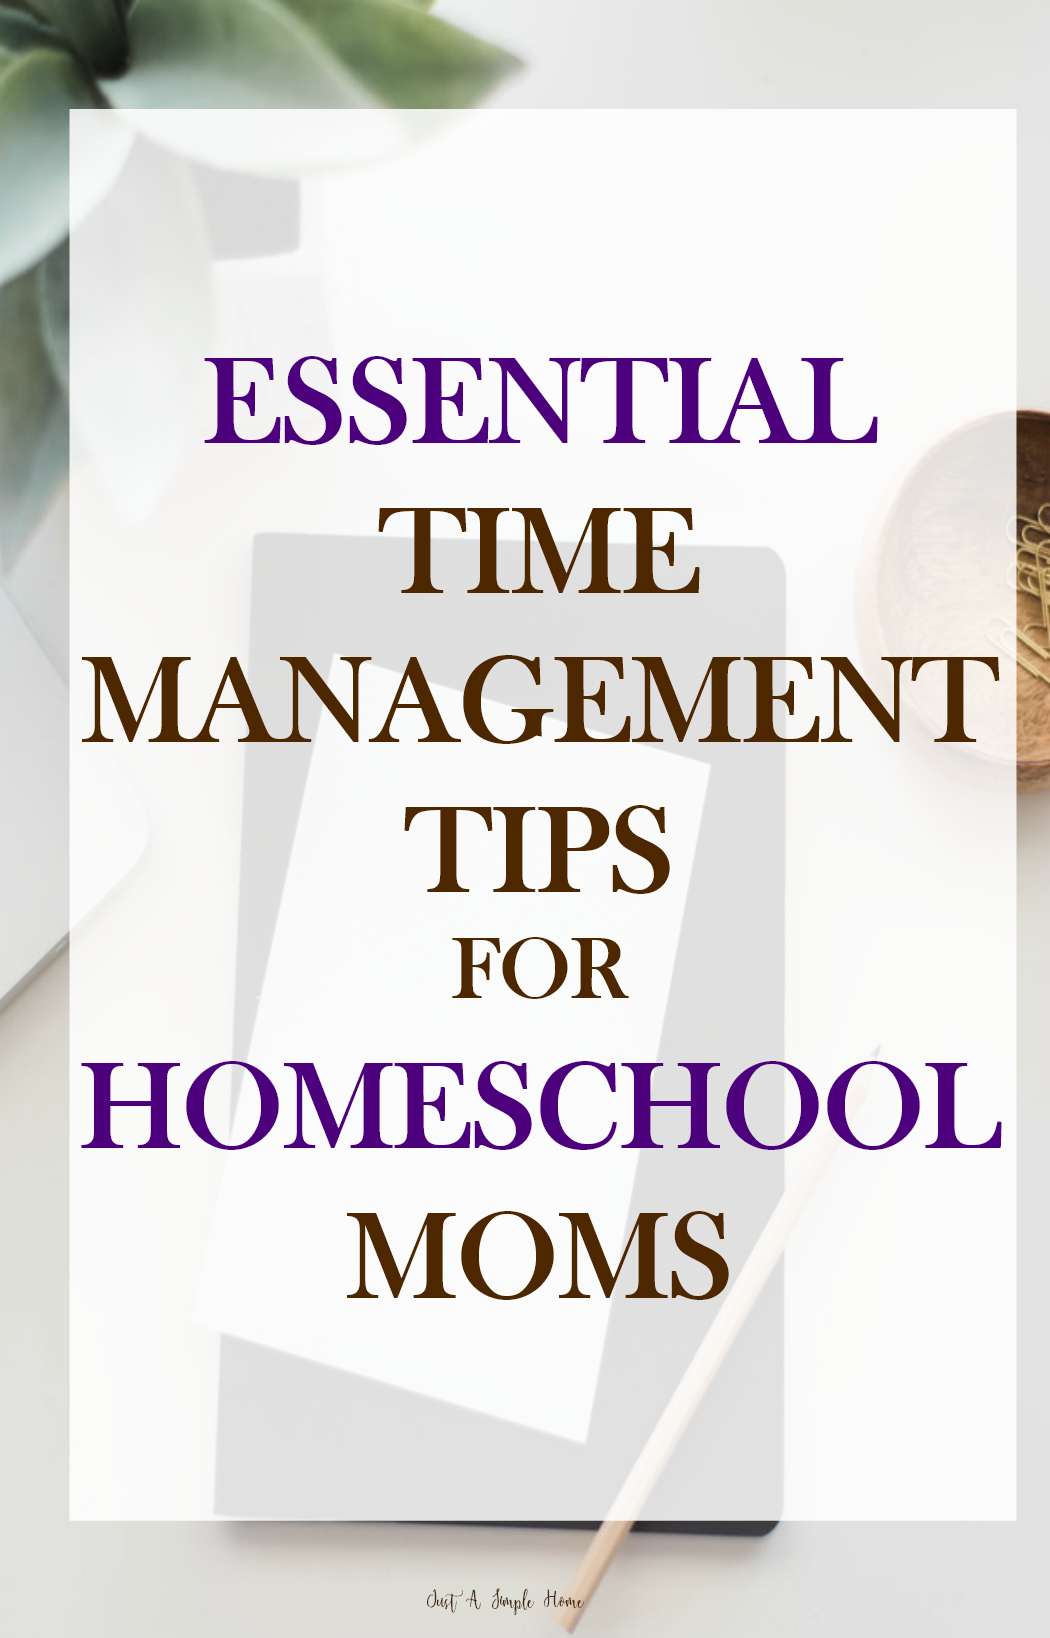 Essential Time Management Tips for Homeschool Moms - 10 Days of Homeschool Planning